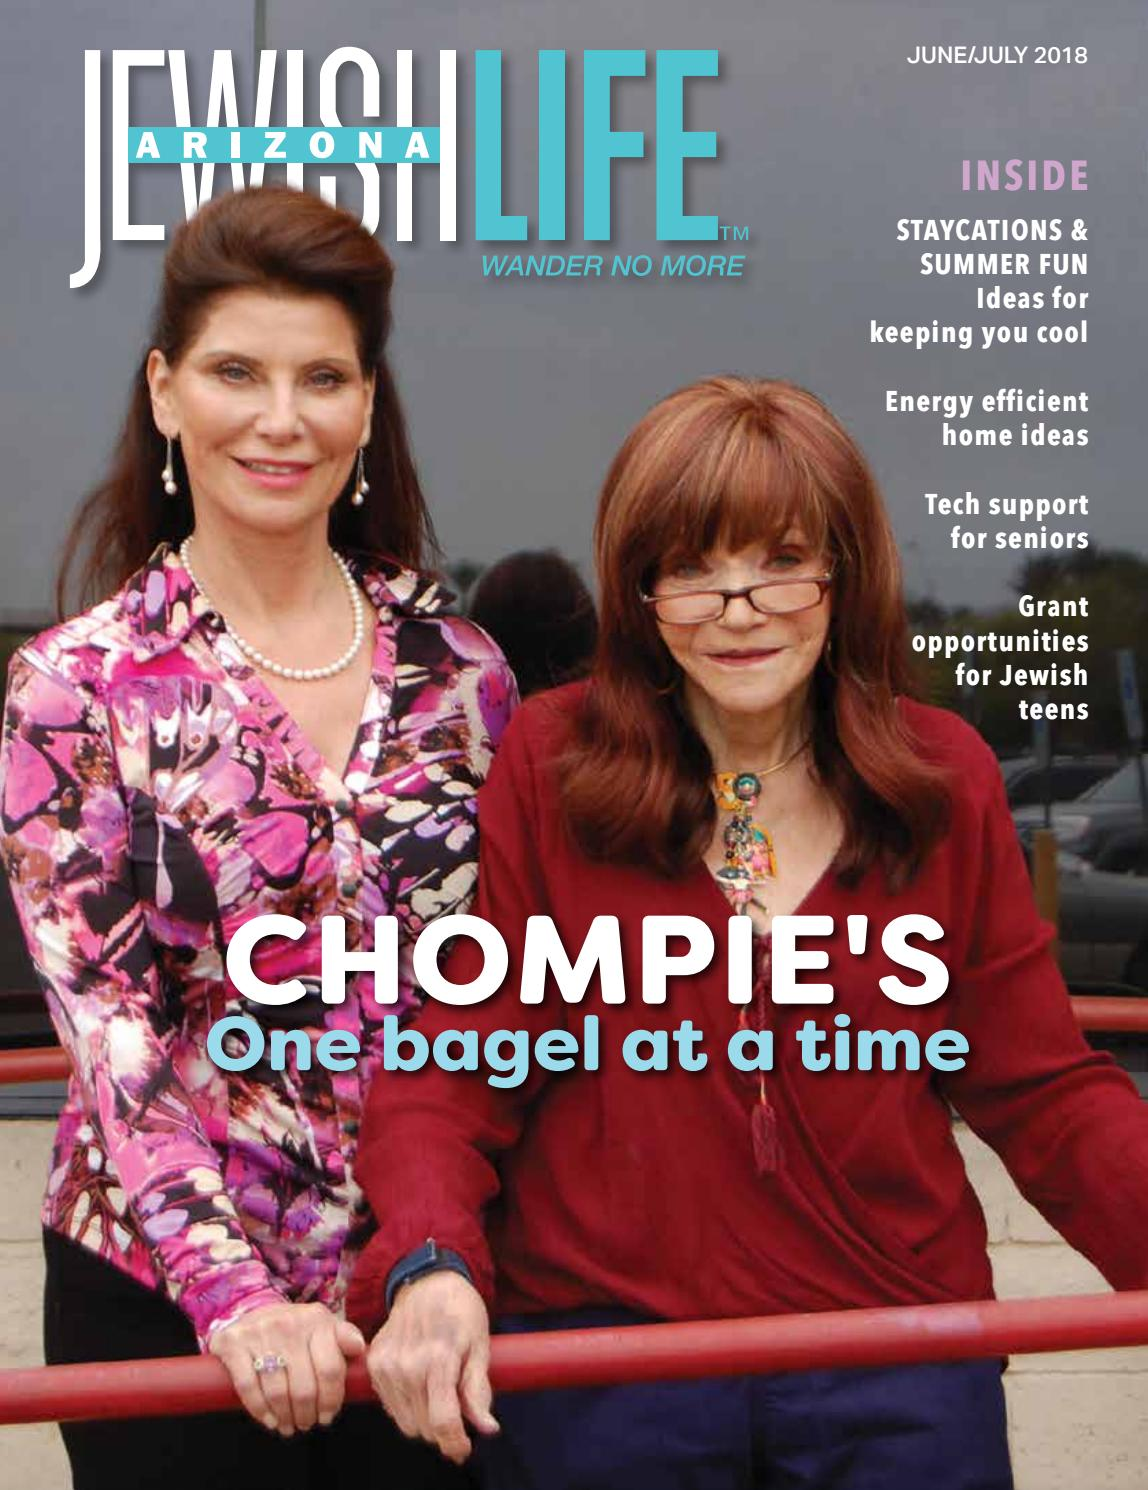 fe9a586612 Arizona Jewish Life June July 2018 Vol. 6 Issue 9 by JewishLifeMagazine -  issuu